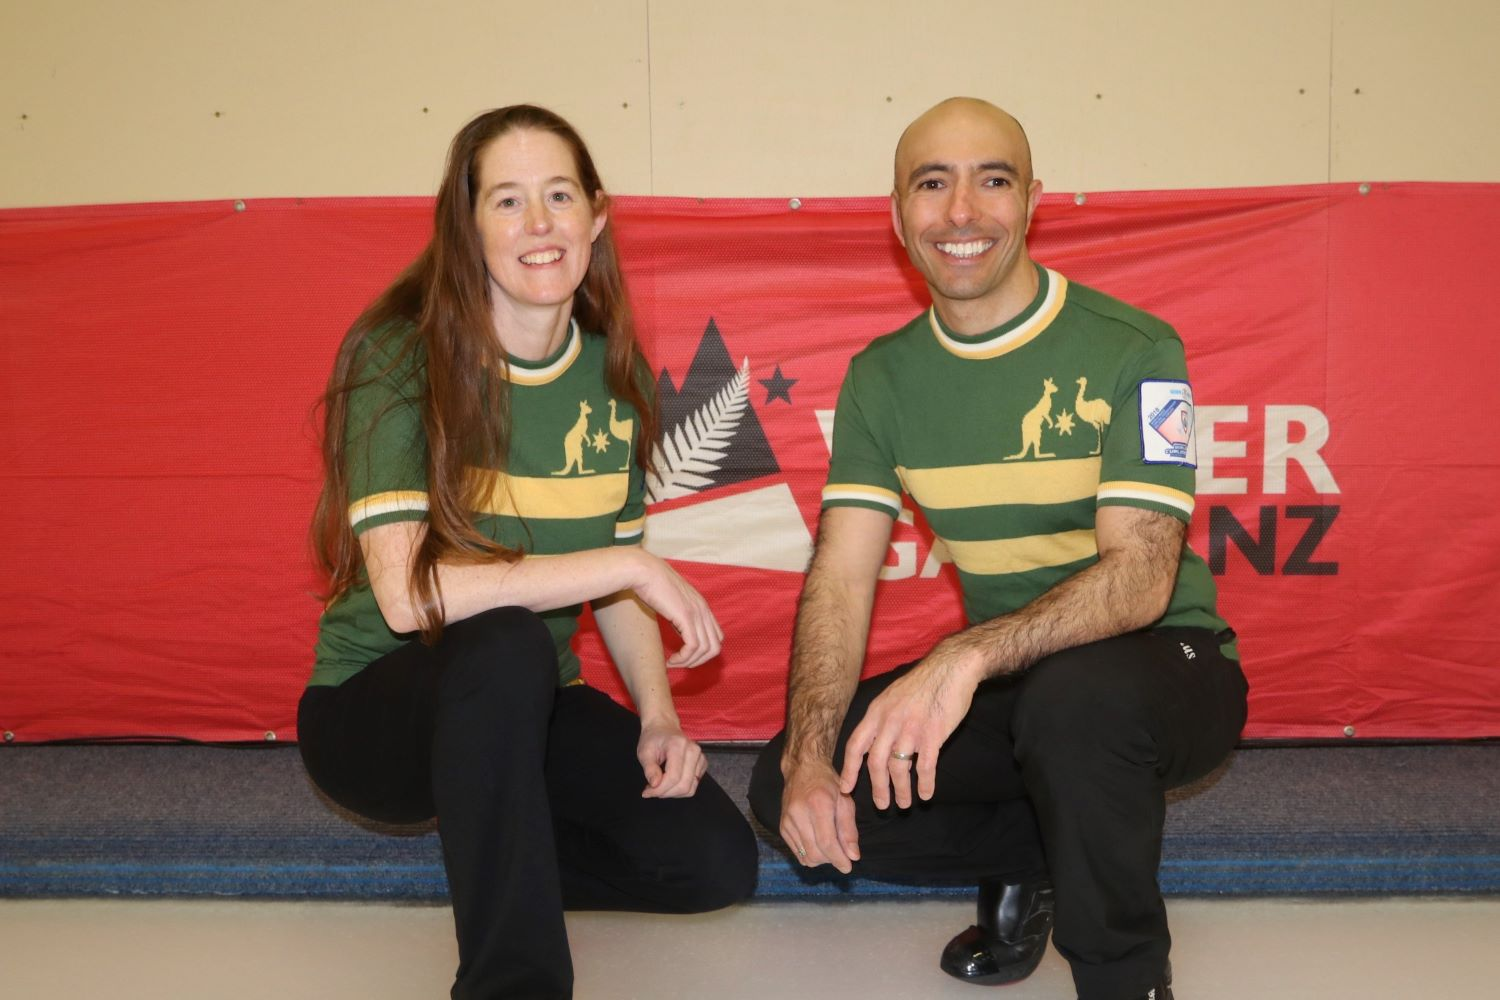 Team AUS2 - Jennifer Westhagen and Matt Panoussi